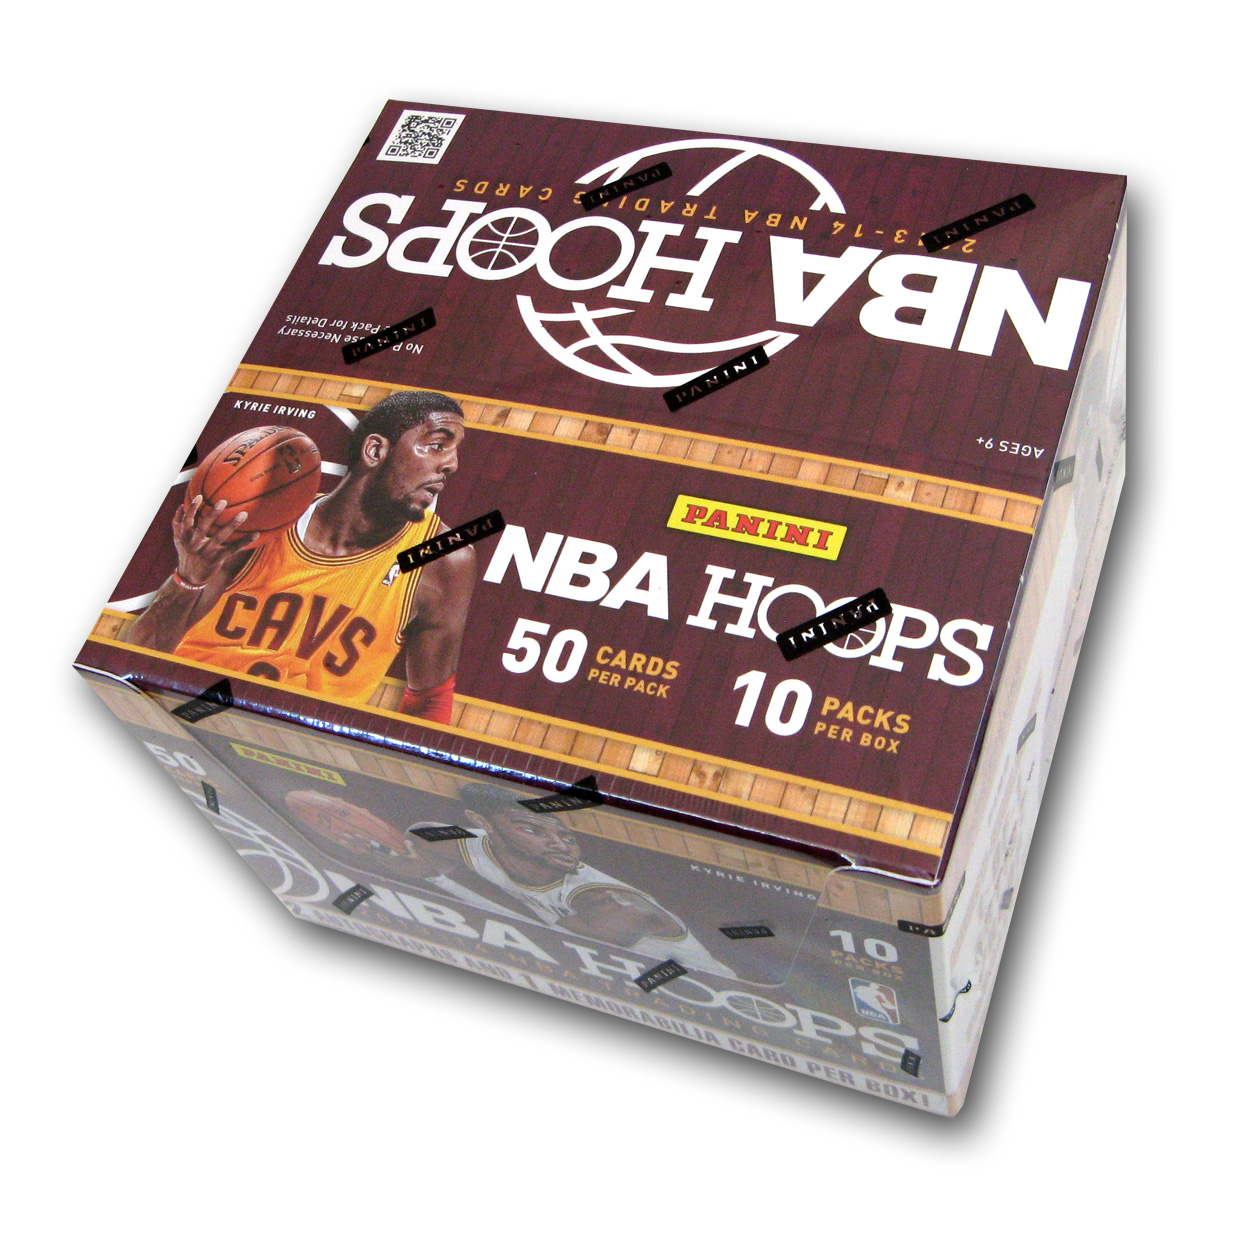 2013-2014 Panini NBA Hoops Basketball Jumbo Box